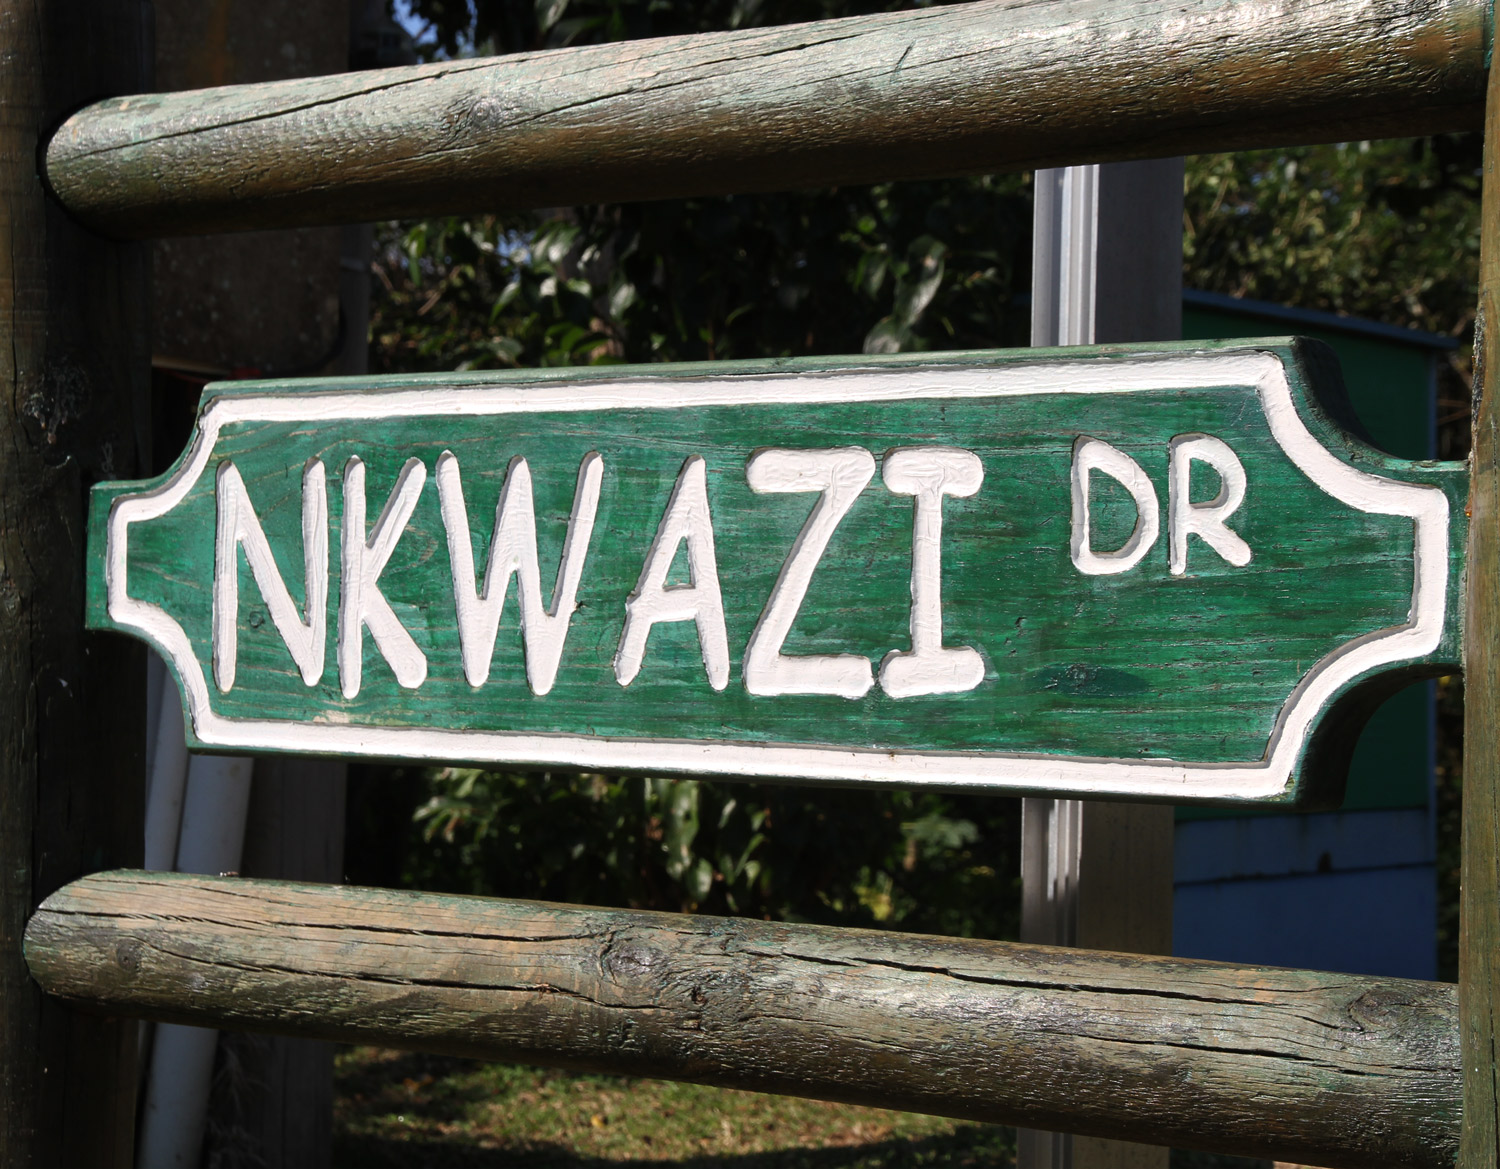 Nkwazi Drive Road Sign